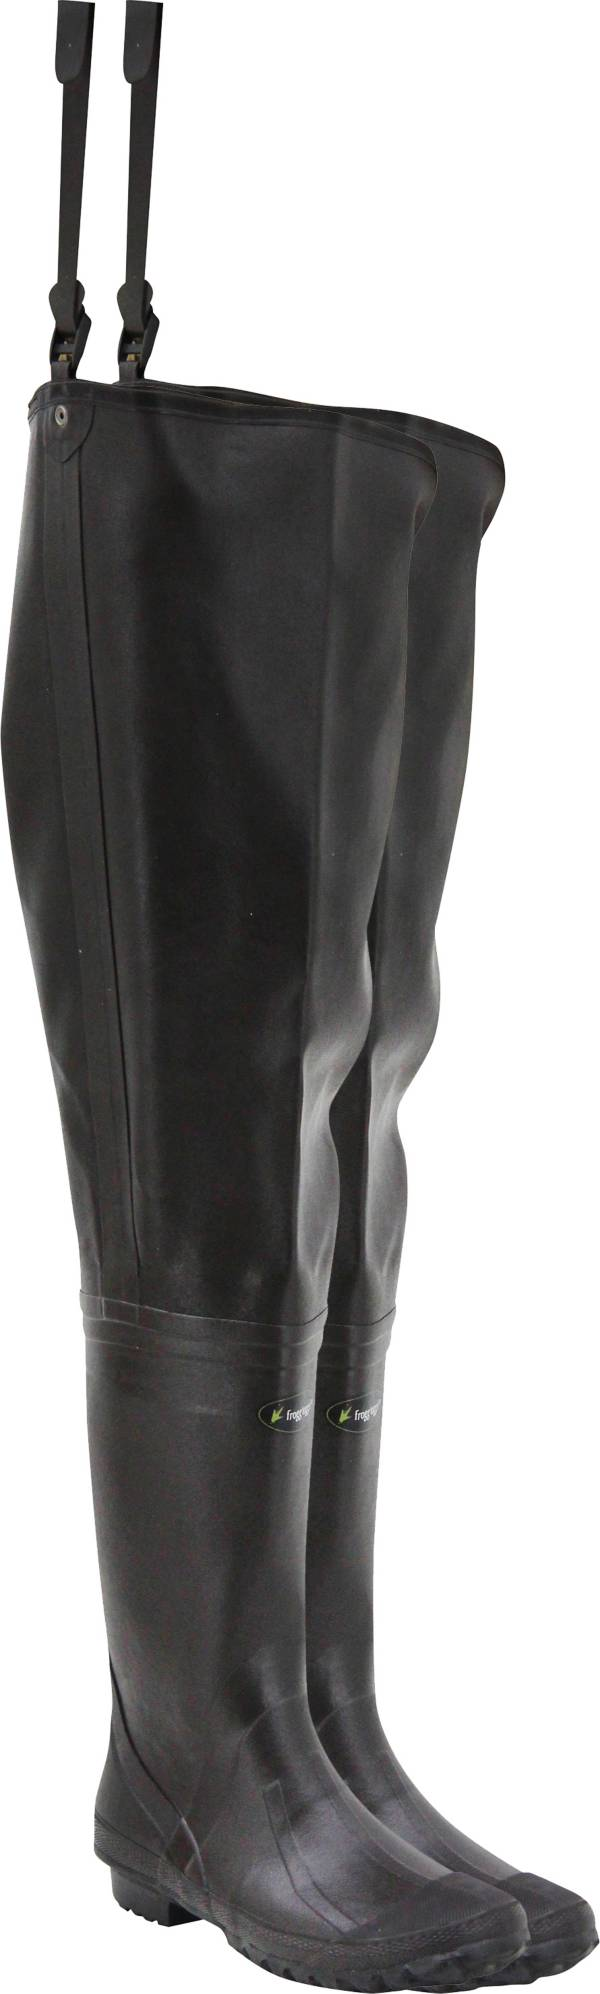 frogg toggs Youth Rubber Hip Waders product image